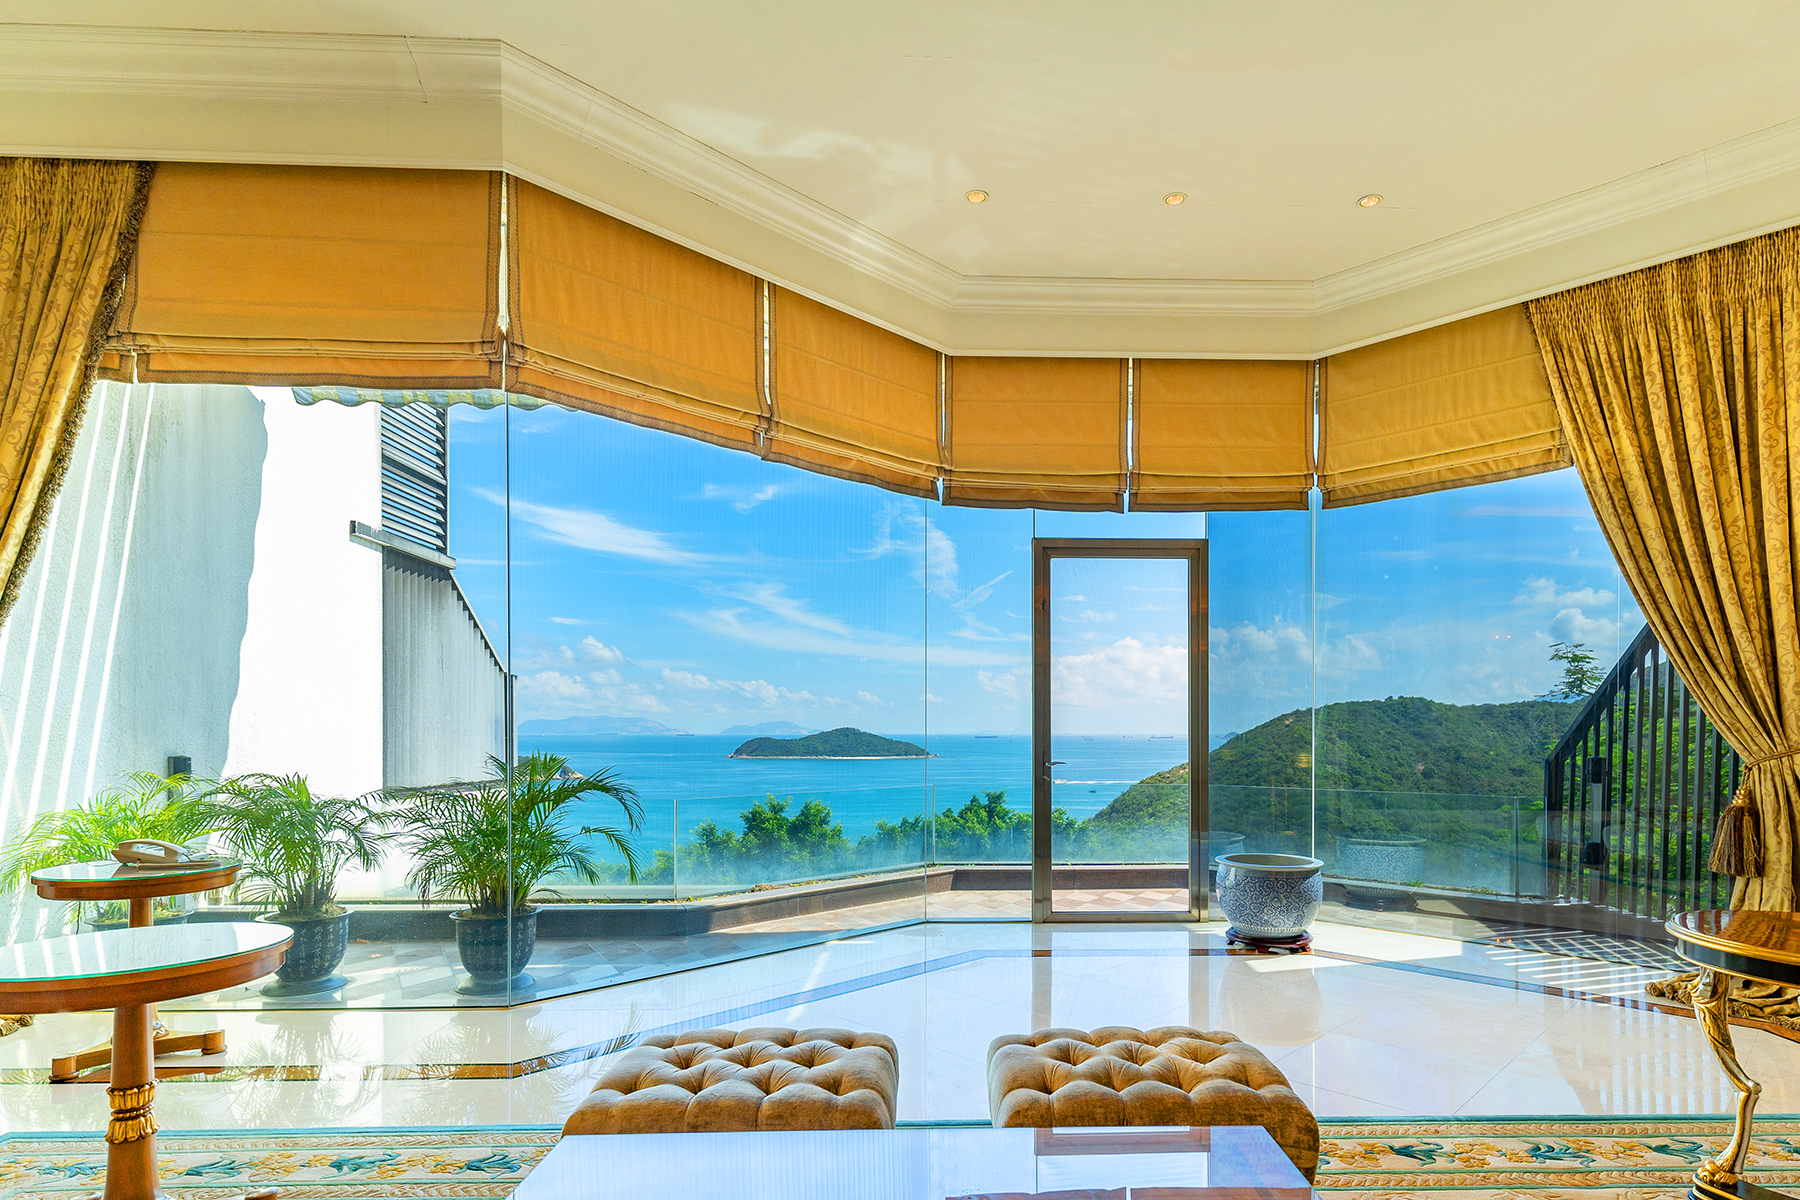 Single Family Home for Sale at Overbays Repulse Bay, Hong Kong Hong Kong